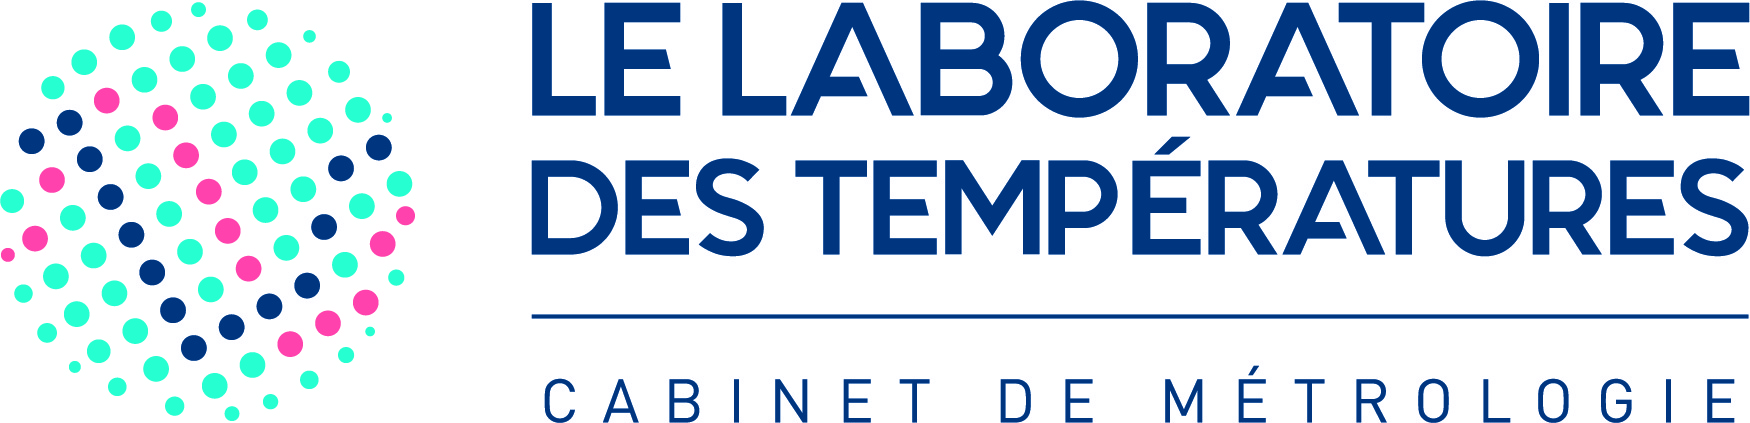 1543492118-le-laboratoires-de-temperatures.jpg